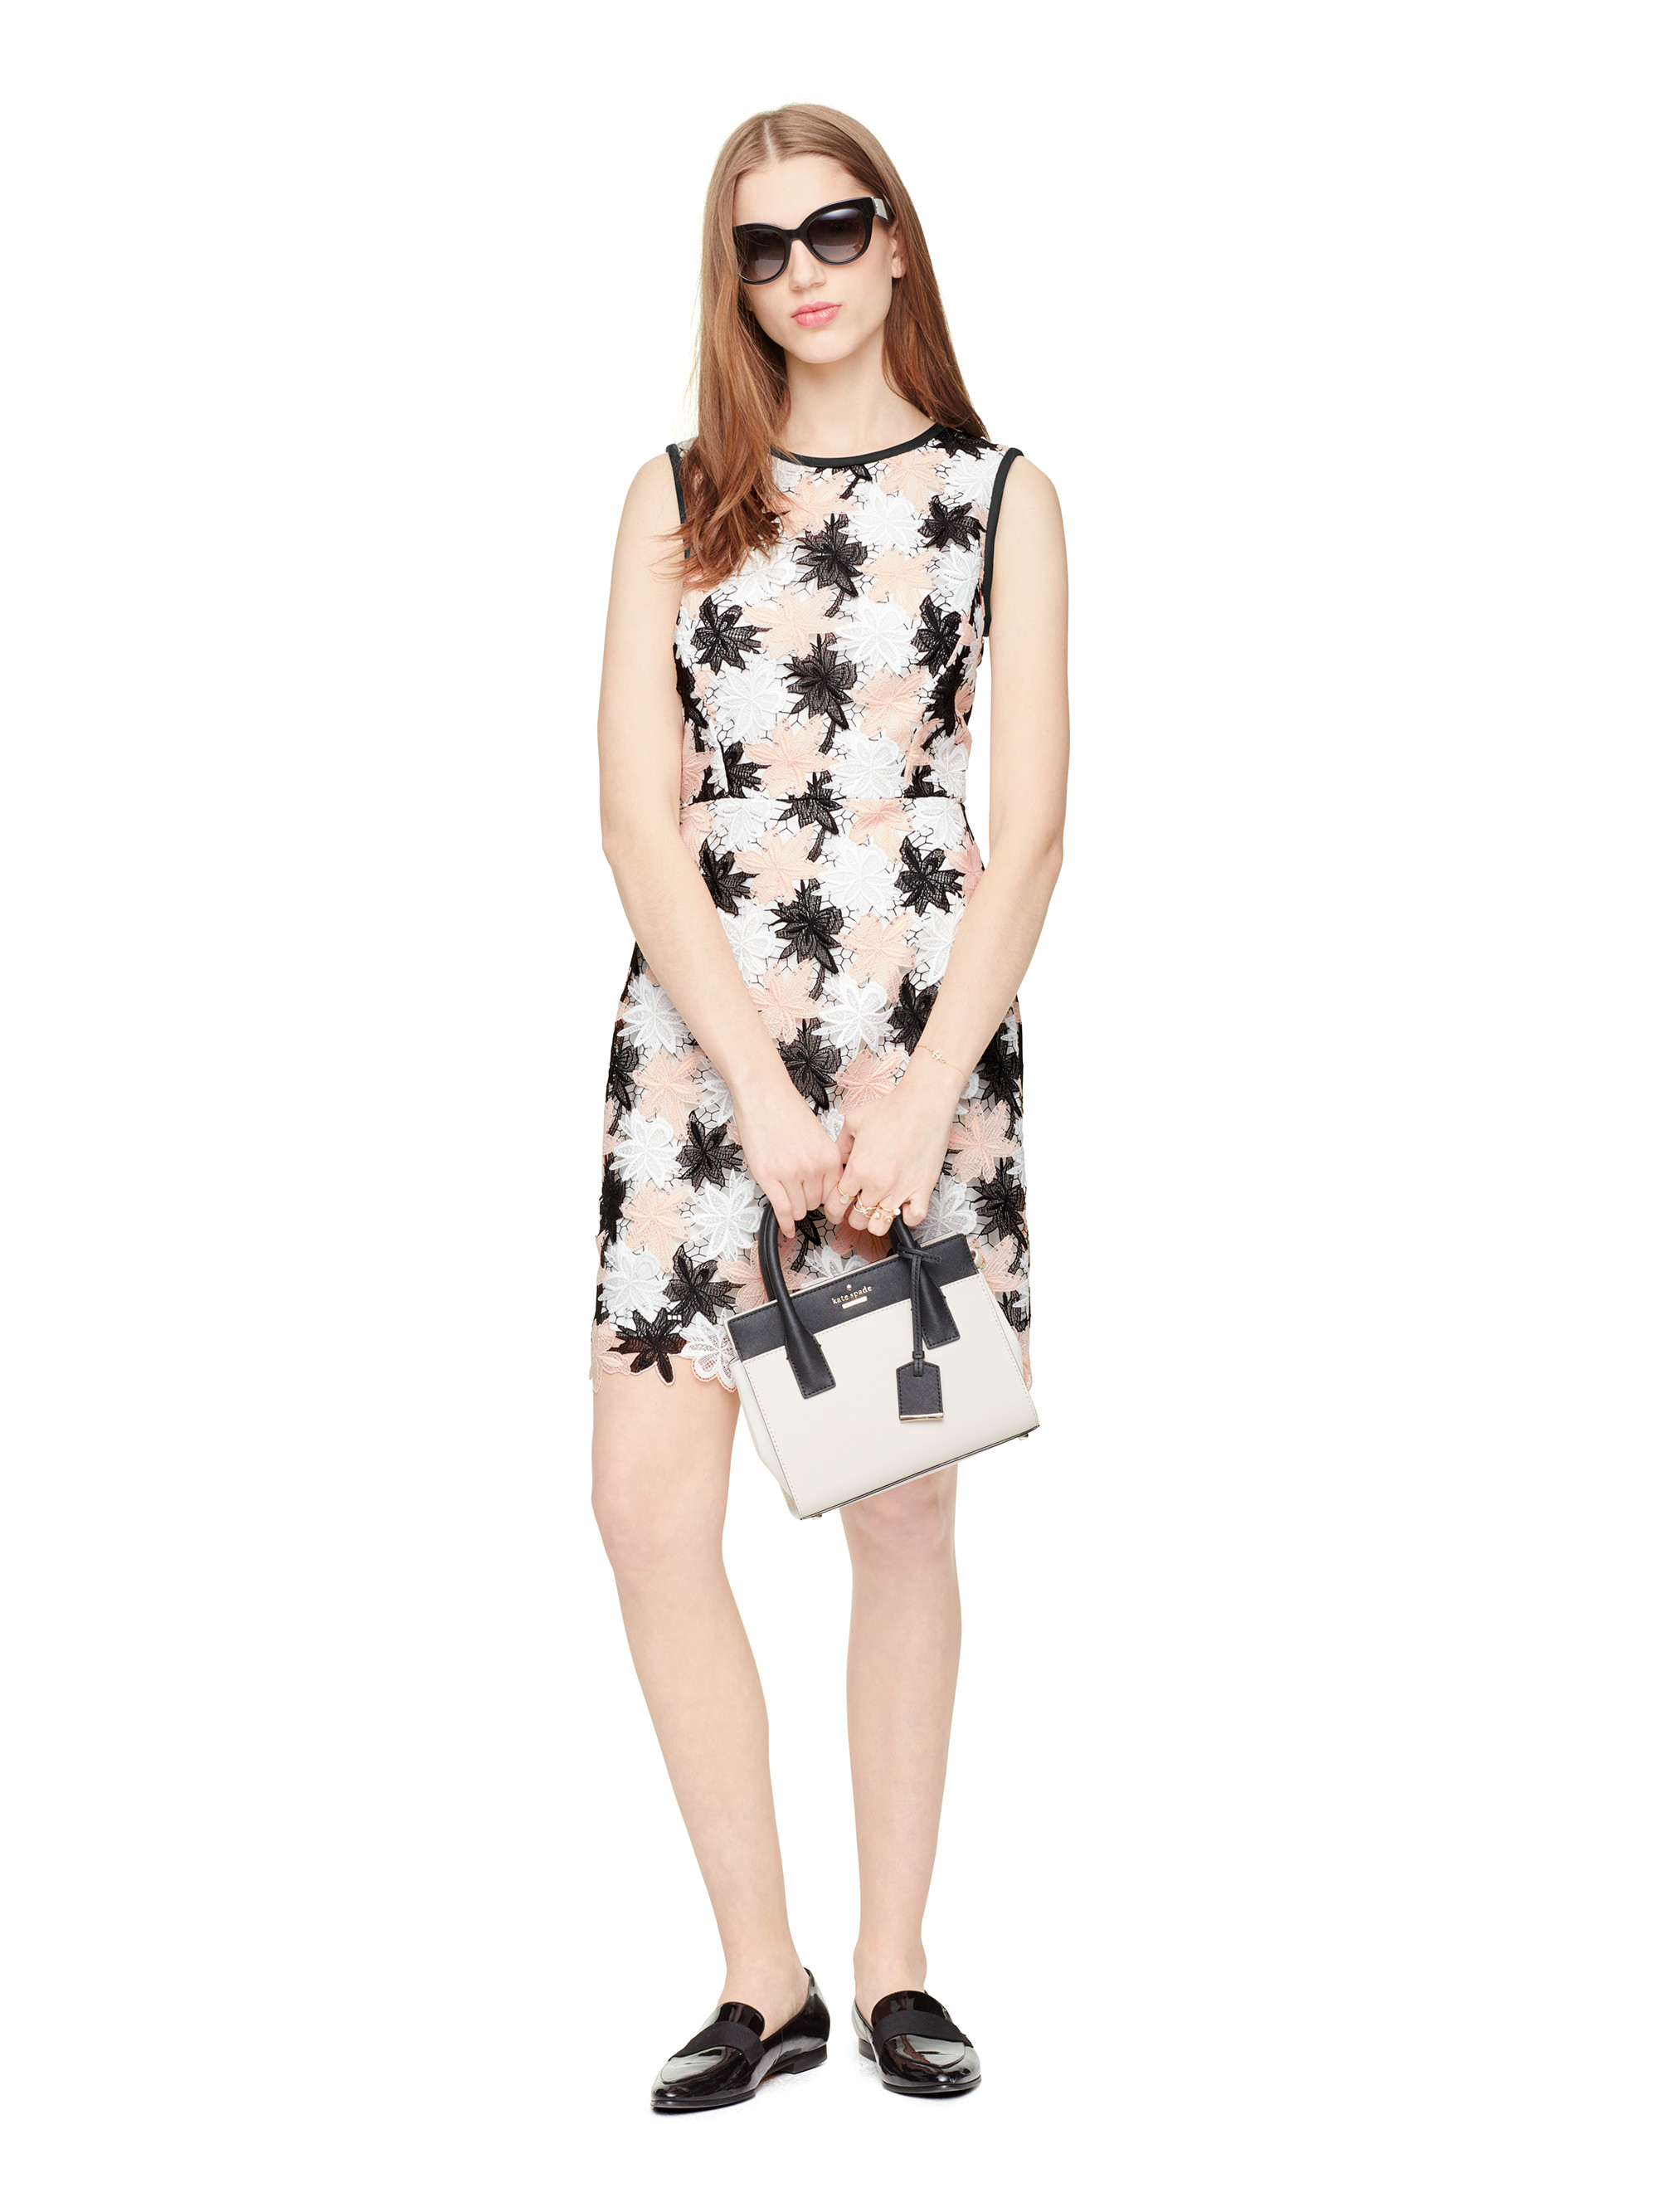 Kate Spade New York Tiger Lily Lace Dress Lyst